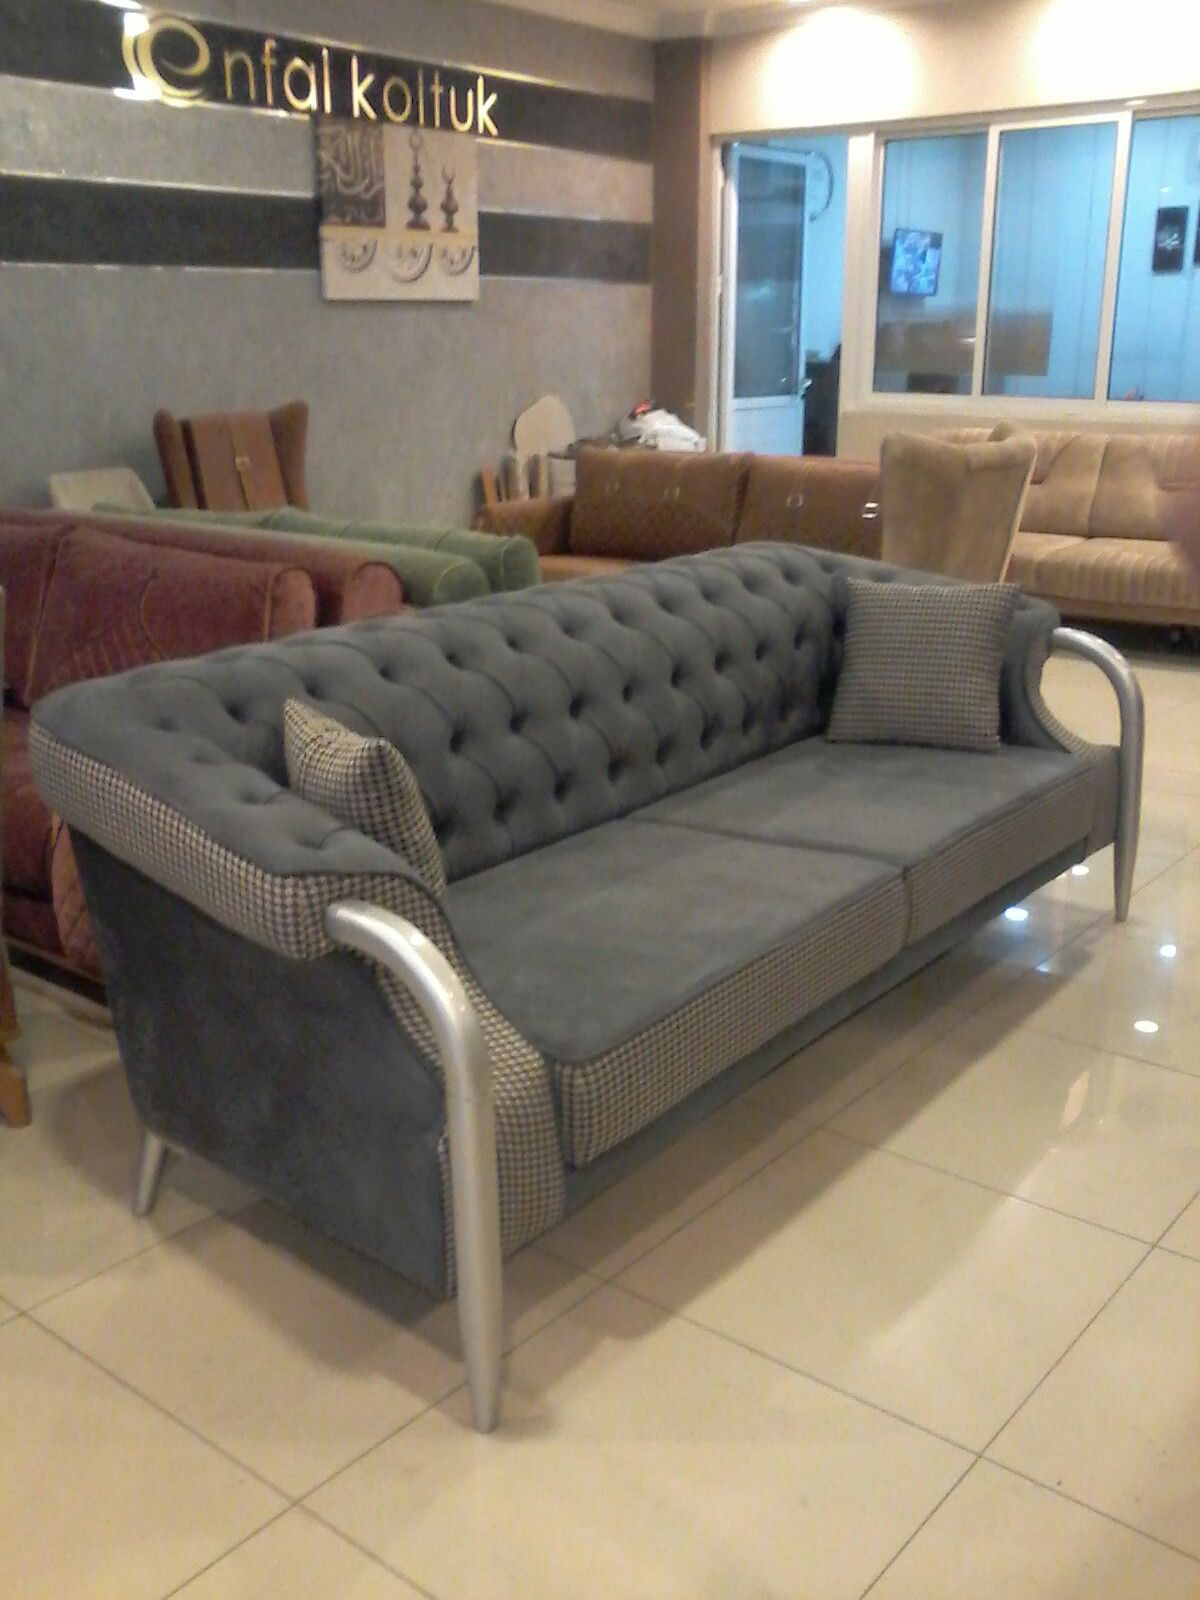 Pin By Nasir Adamu On My Vip With Images Sofa Design Sofa